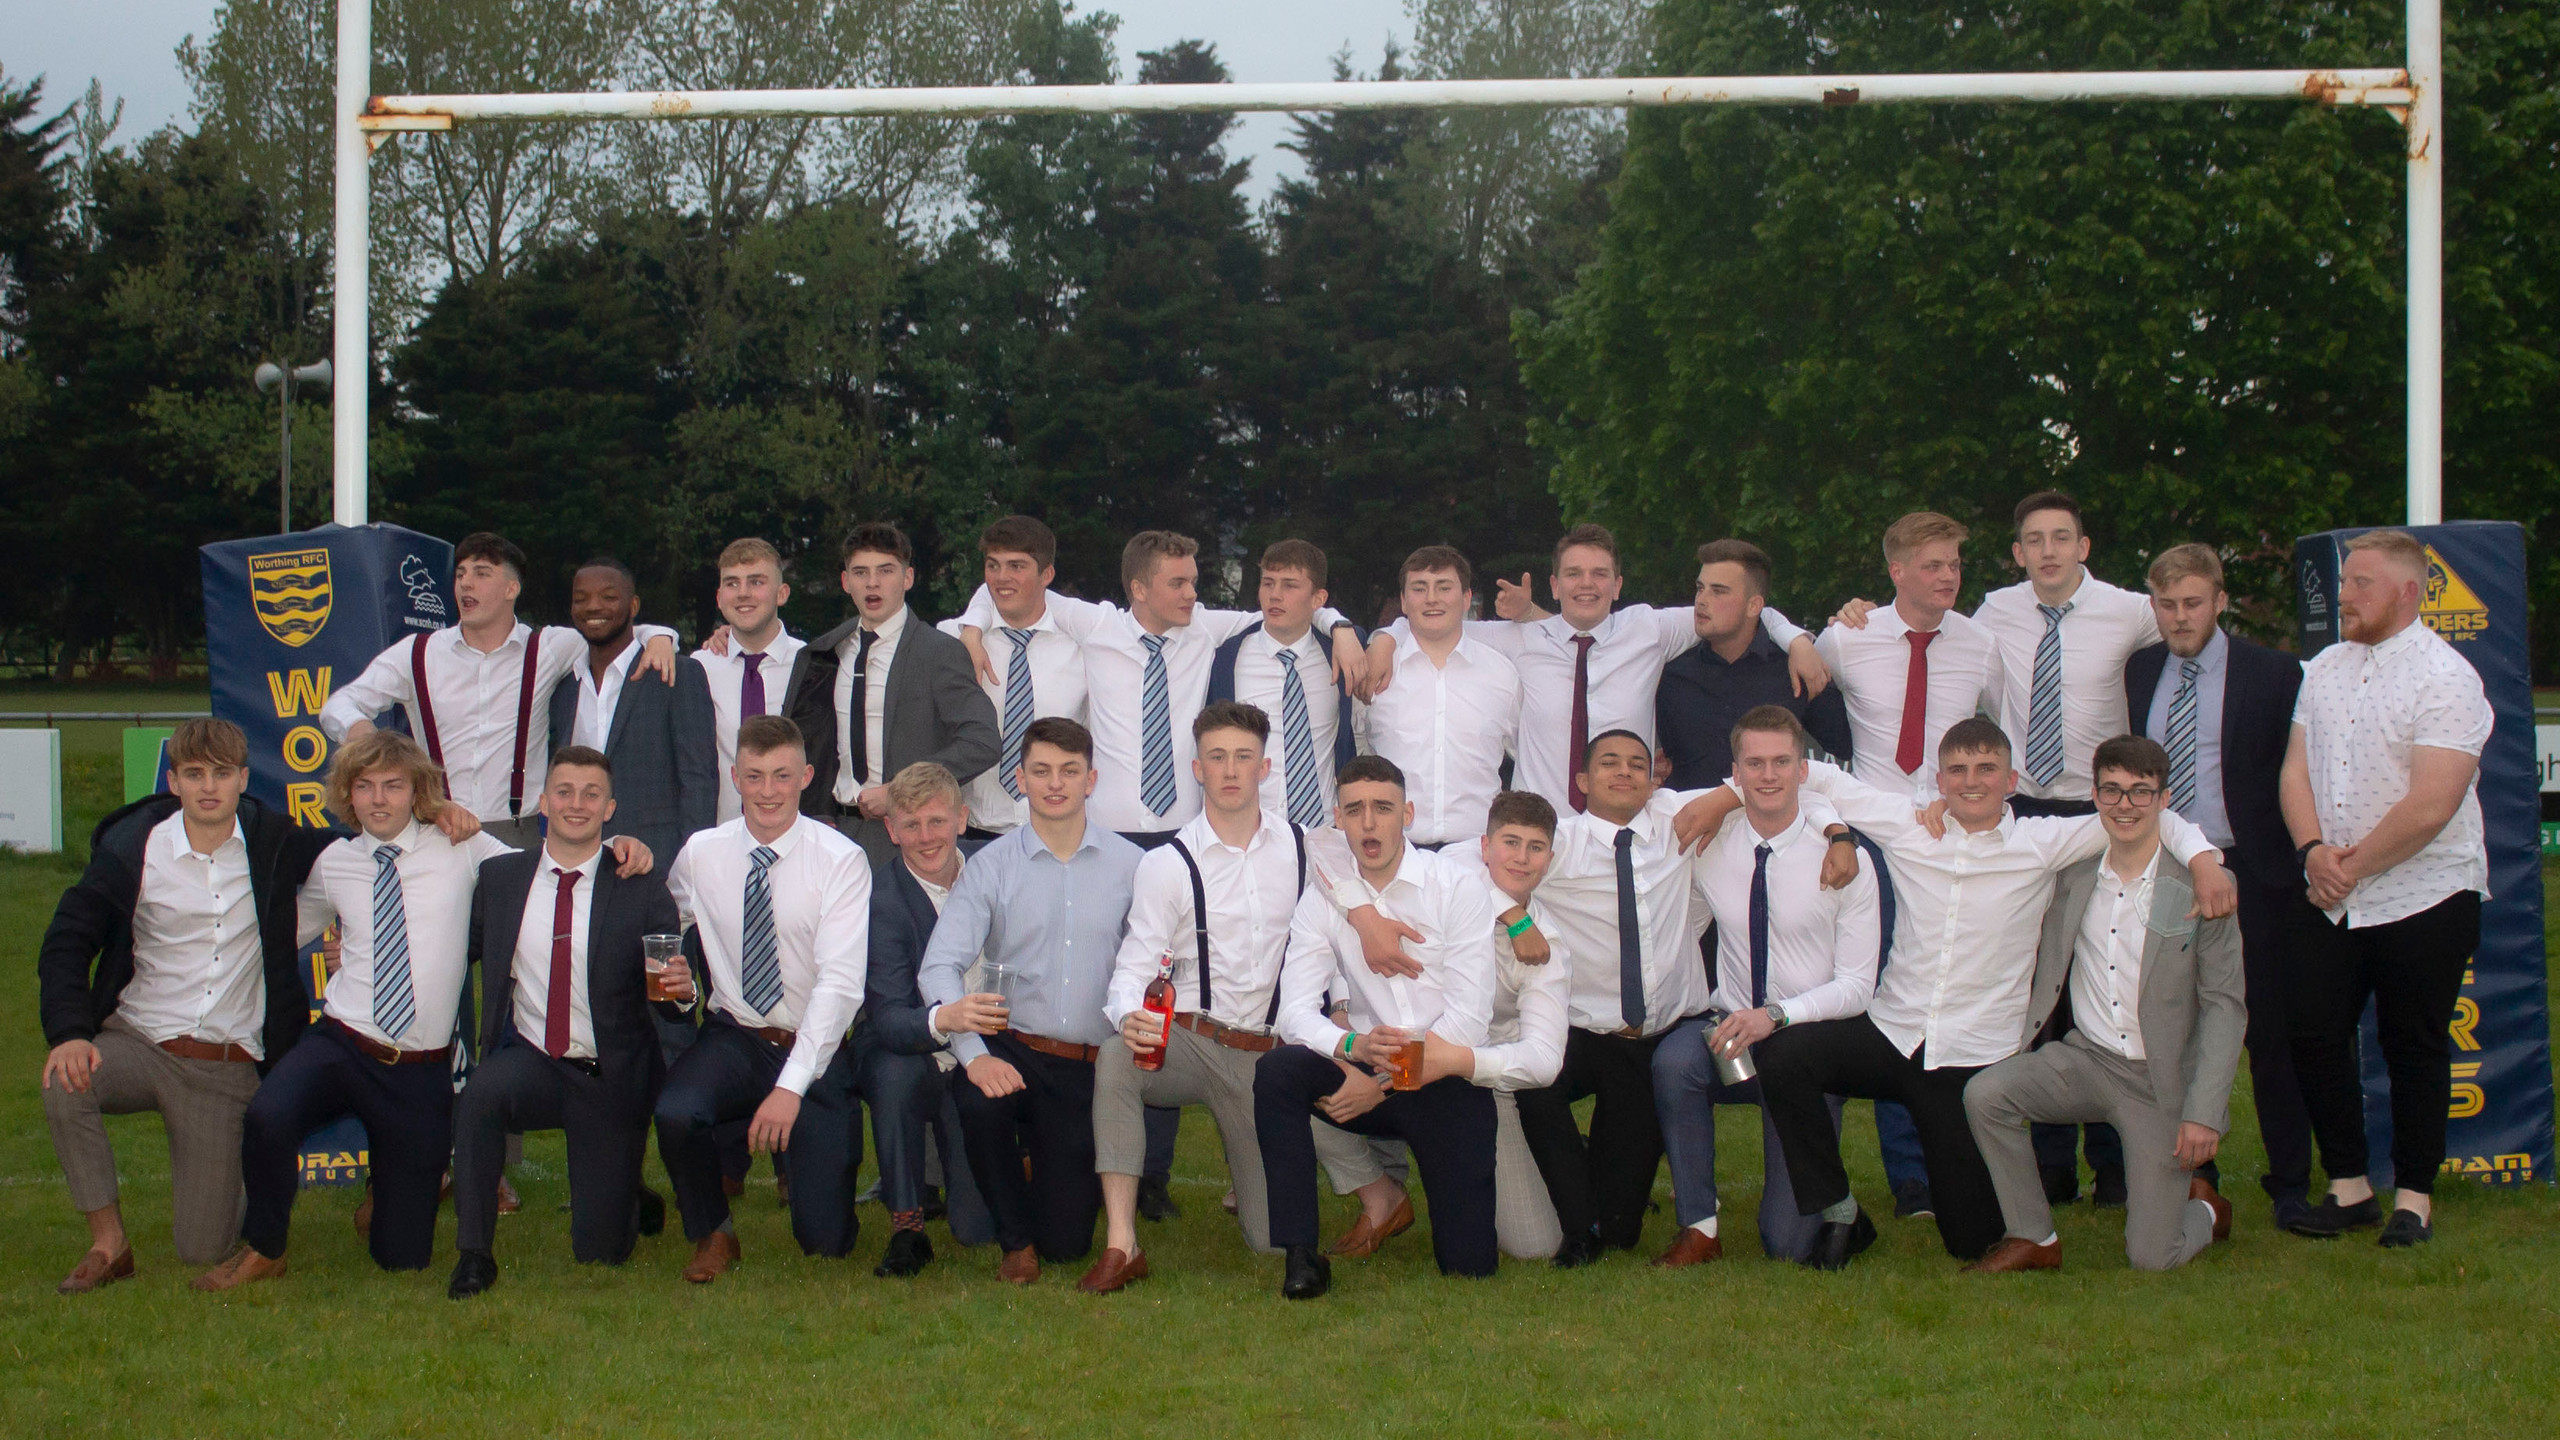 Sports Awards - Rugby Team